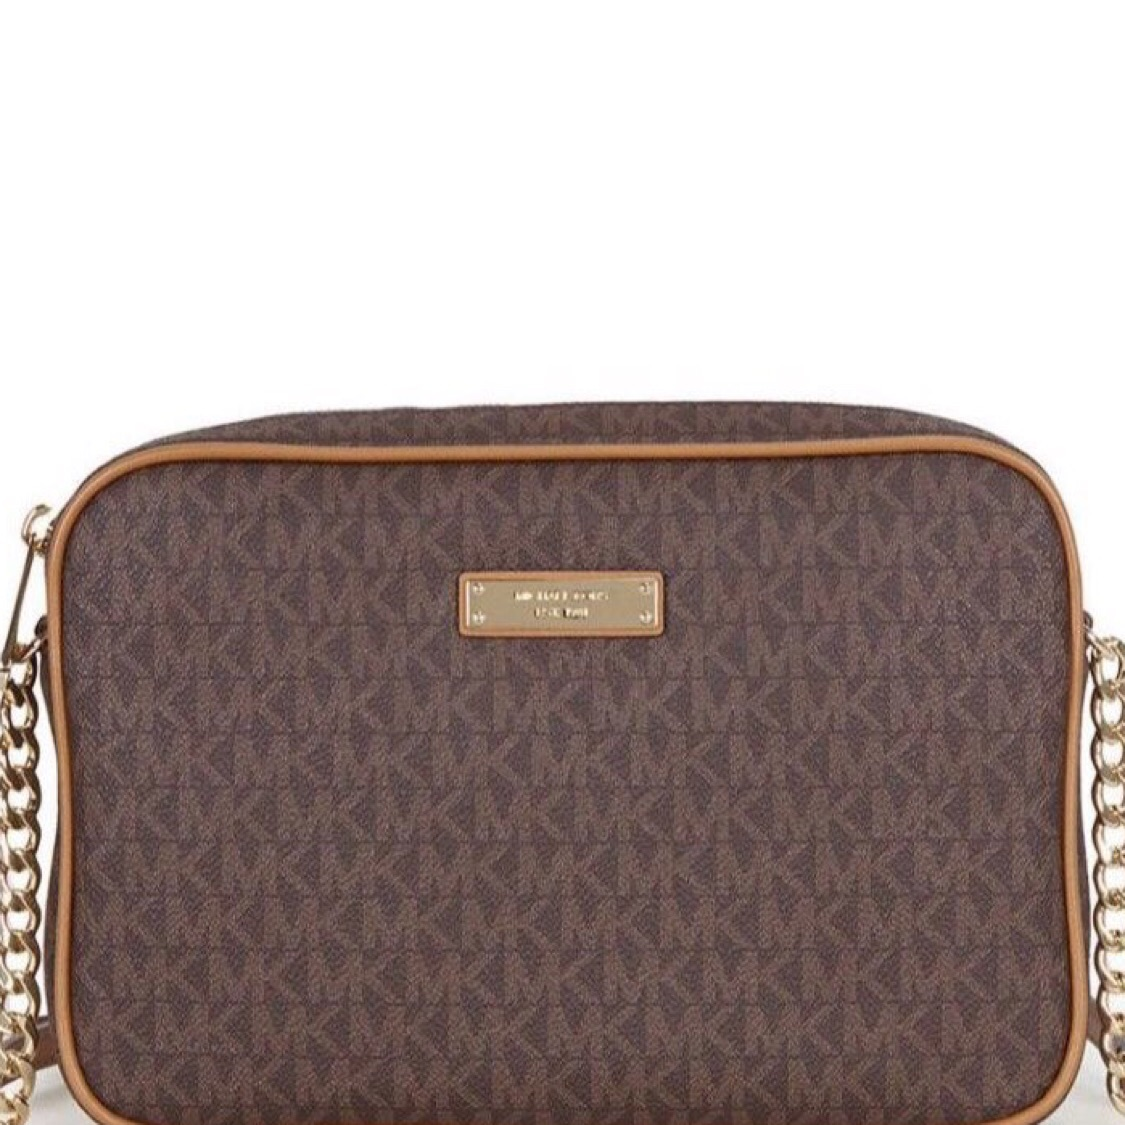 Michael Kors Jetset Travel Crossbody